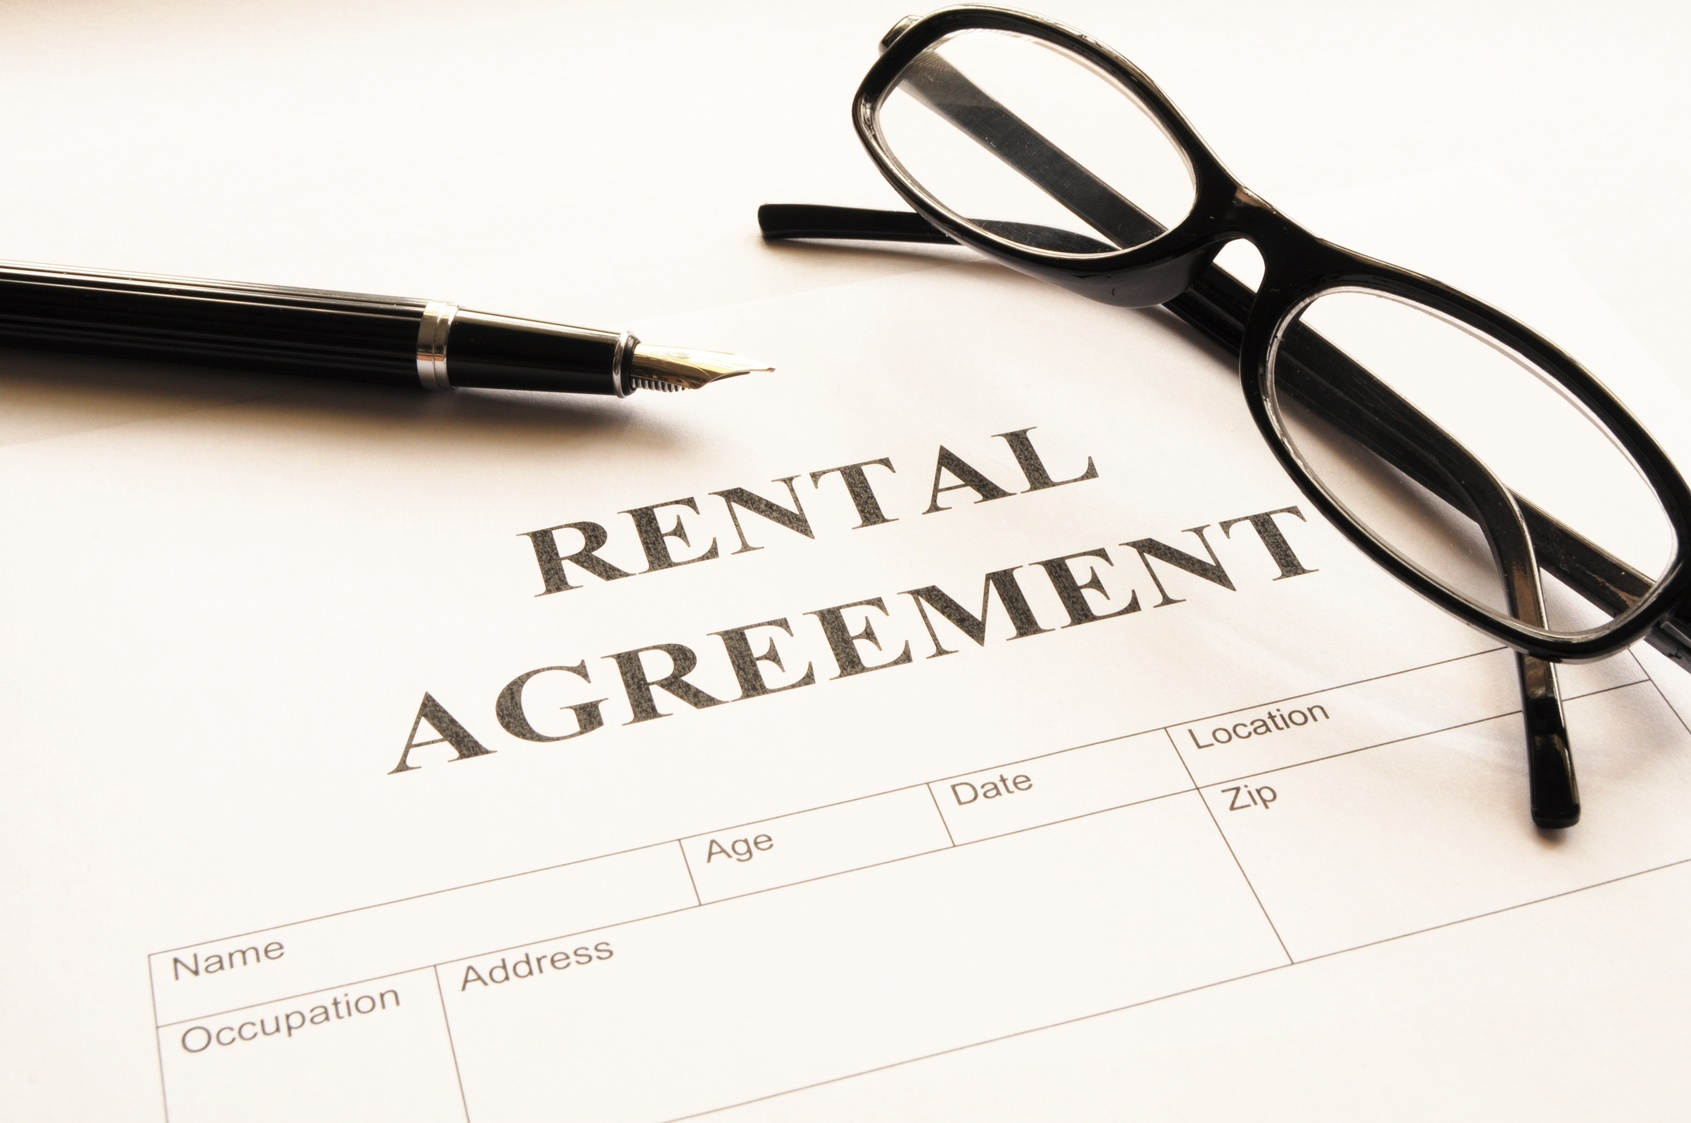 rental agreement form on desktop in business office showing real estate concept